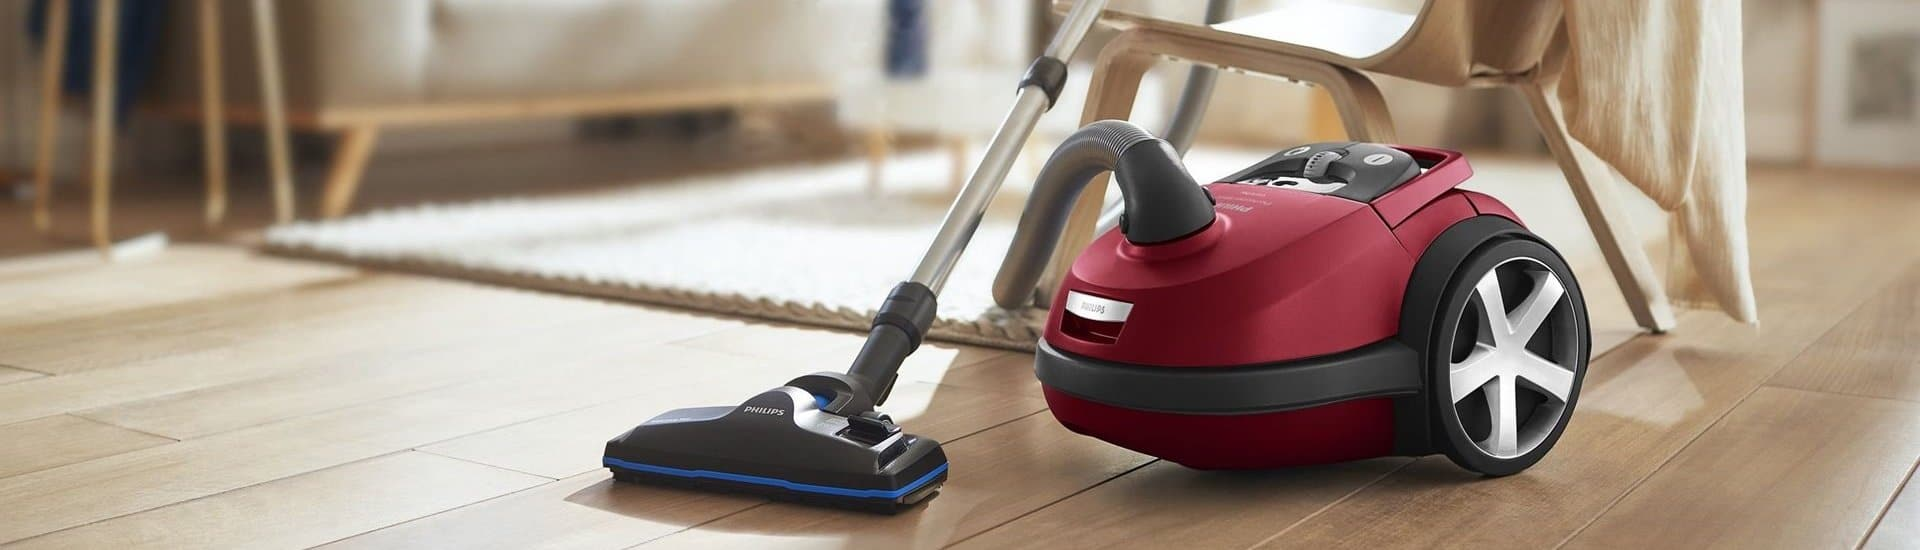 Best Bagged Vacuum Cleaners 2019